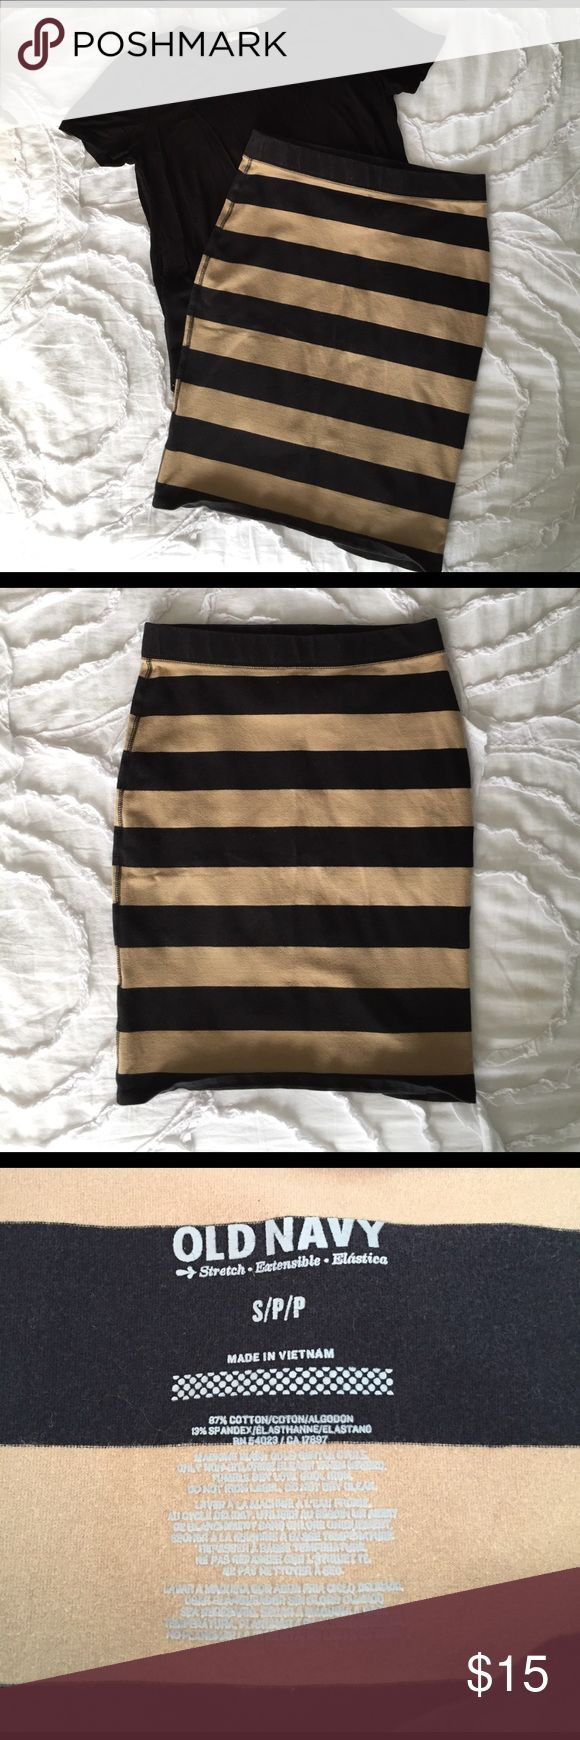 Black & Tan Pencil Skirt I wore this skirt so many times it's so cute with a black tee. It's super comfy and adorable. It is in great condition. Old Navy Skirts Pencil